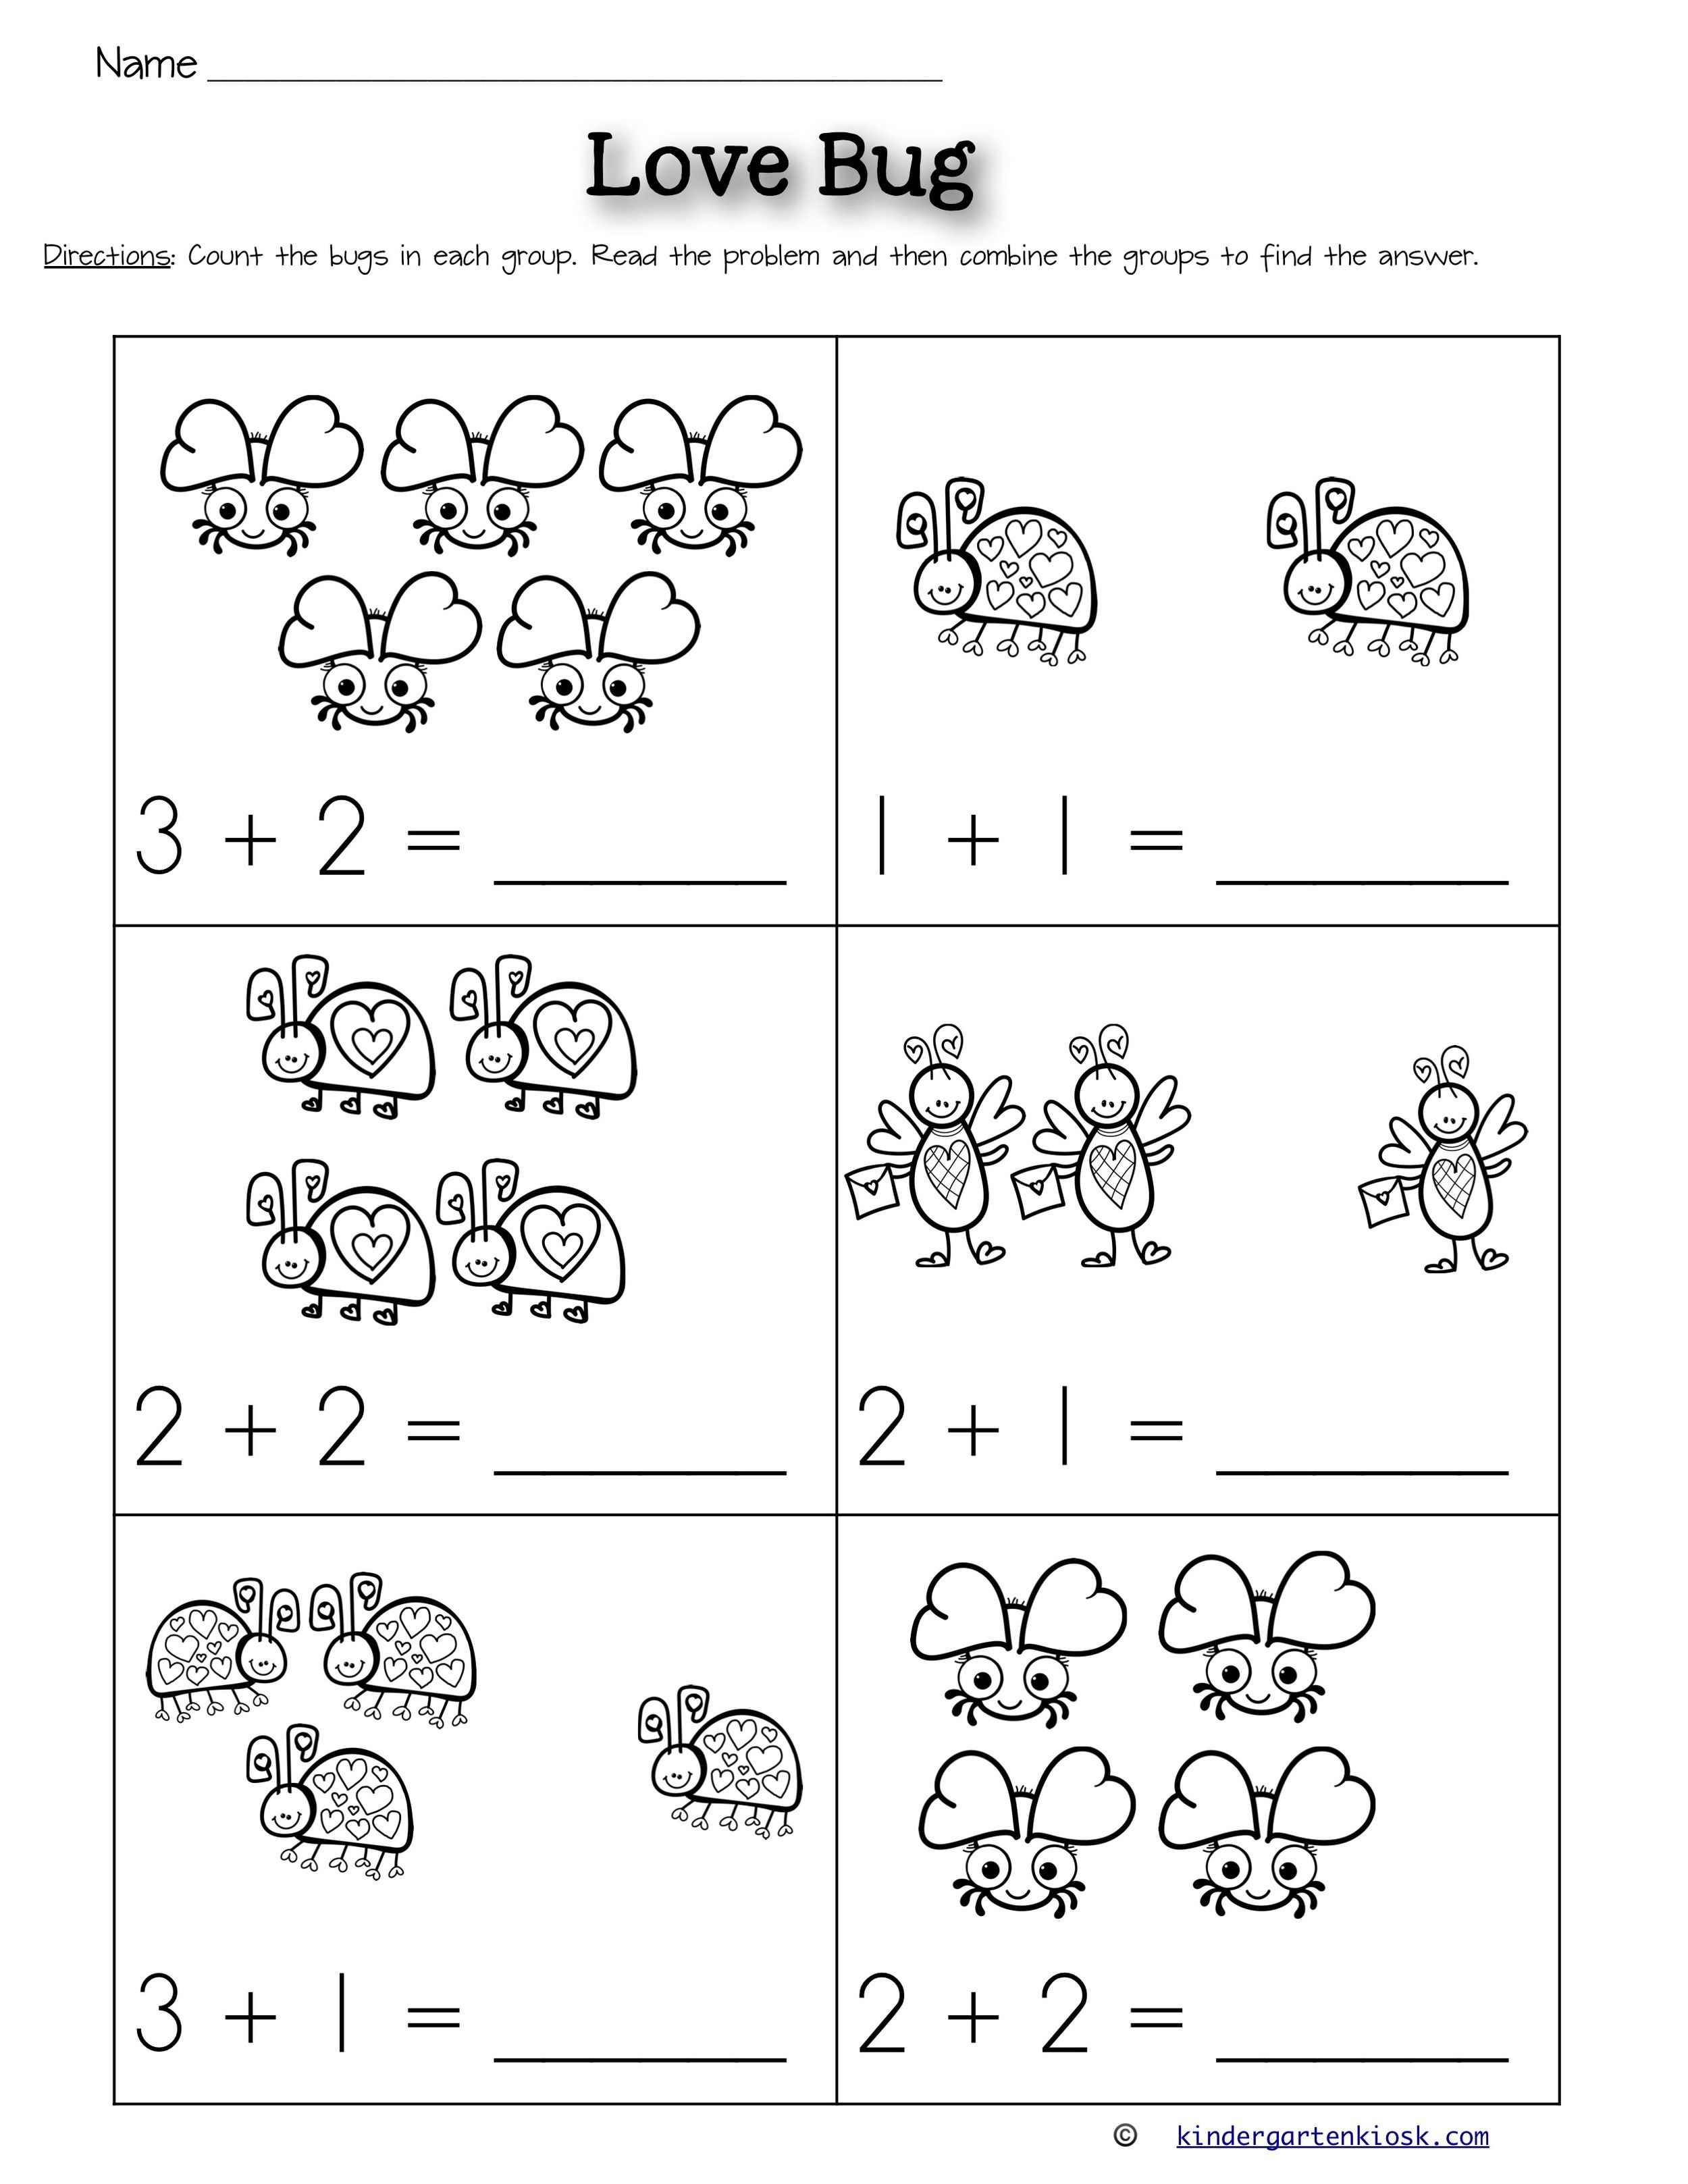 small resolution of Addition 0-5 Worksheets: February — Kindergarten Kiosk   Kindergarten math worksheets  addition